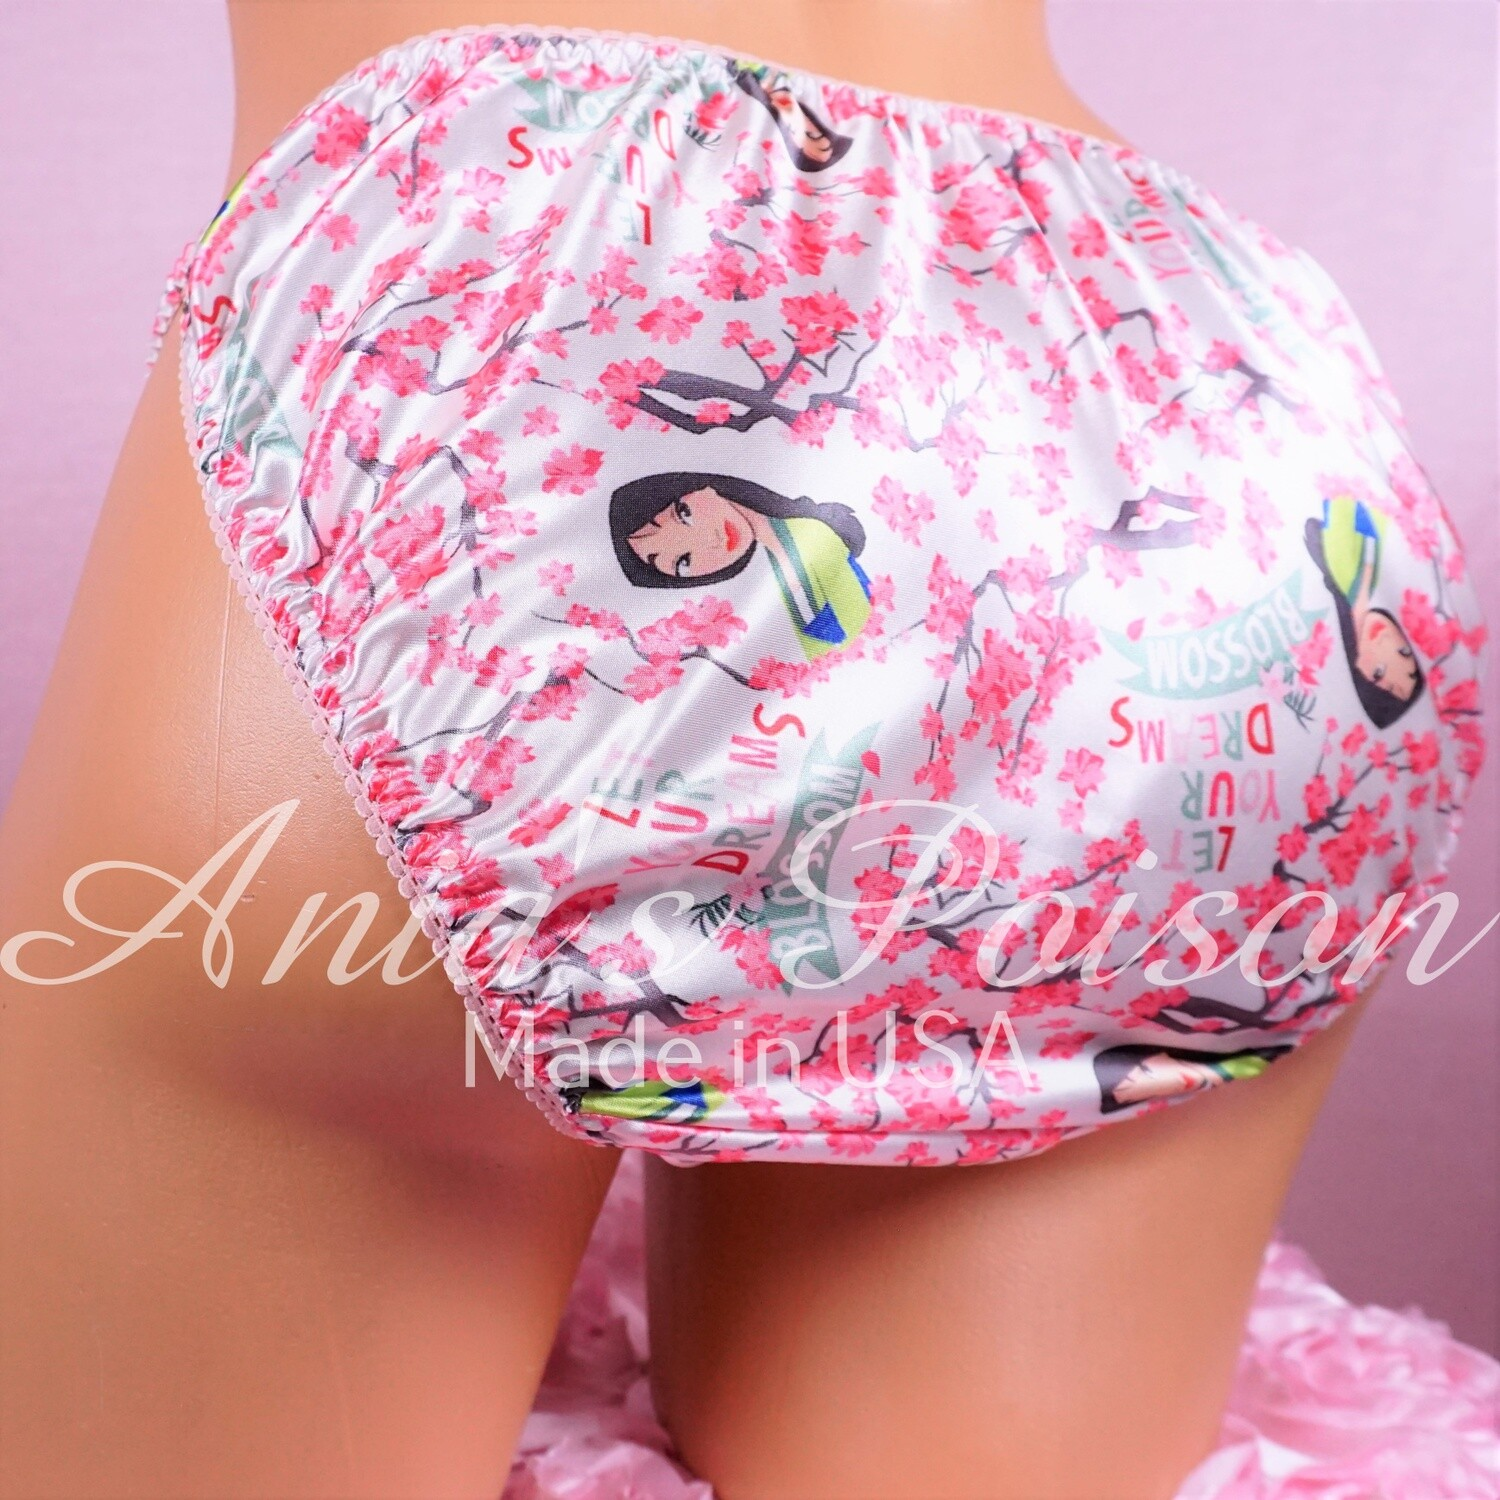 Satin Mens Sissy Print China Princess Lotus Flowers 100% polyester string bikini mens underwear panties